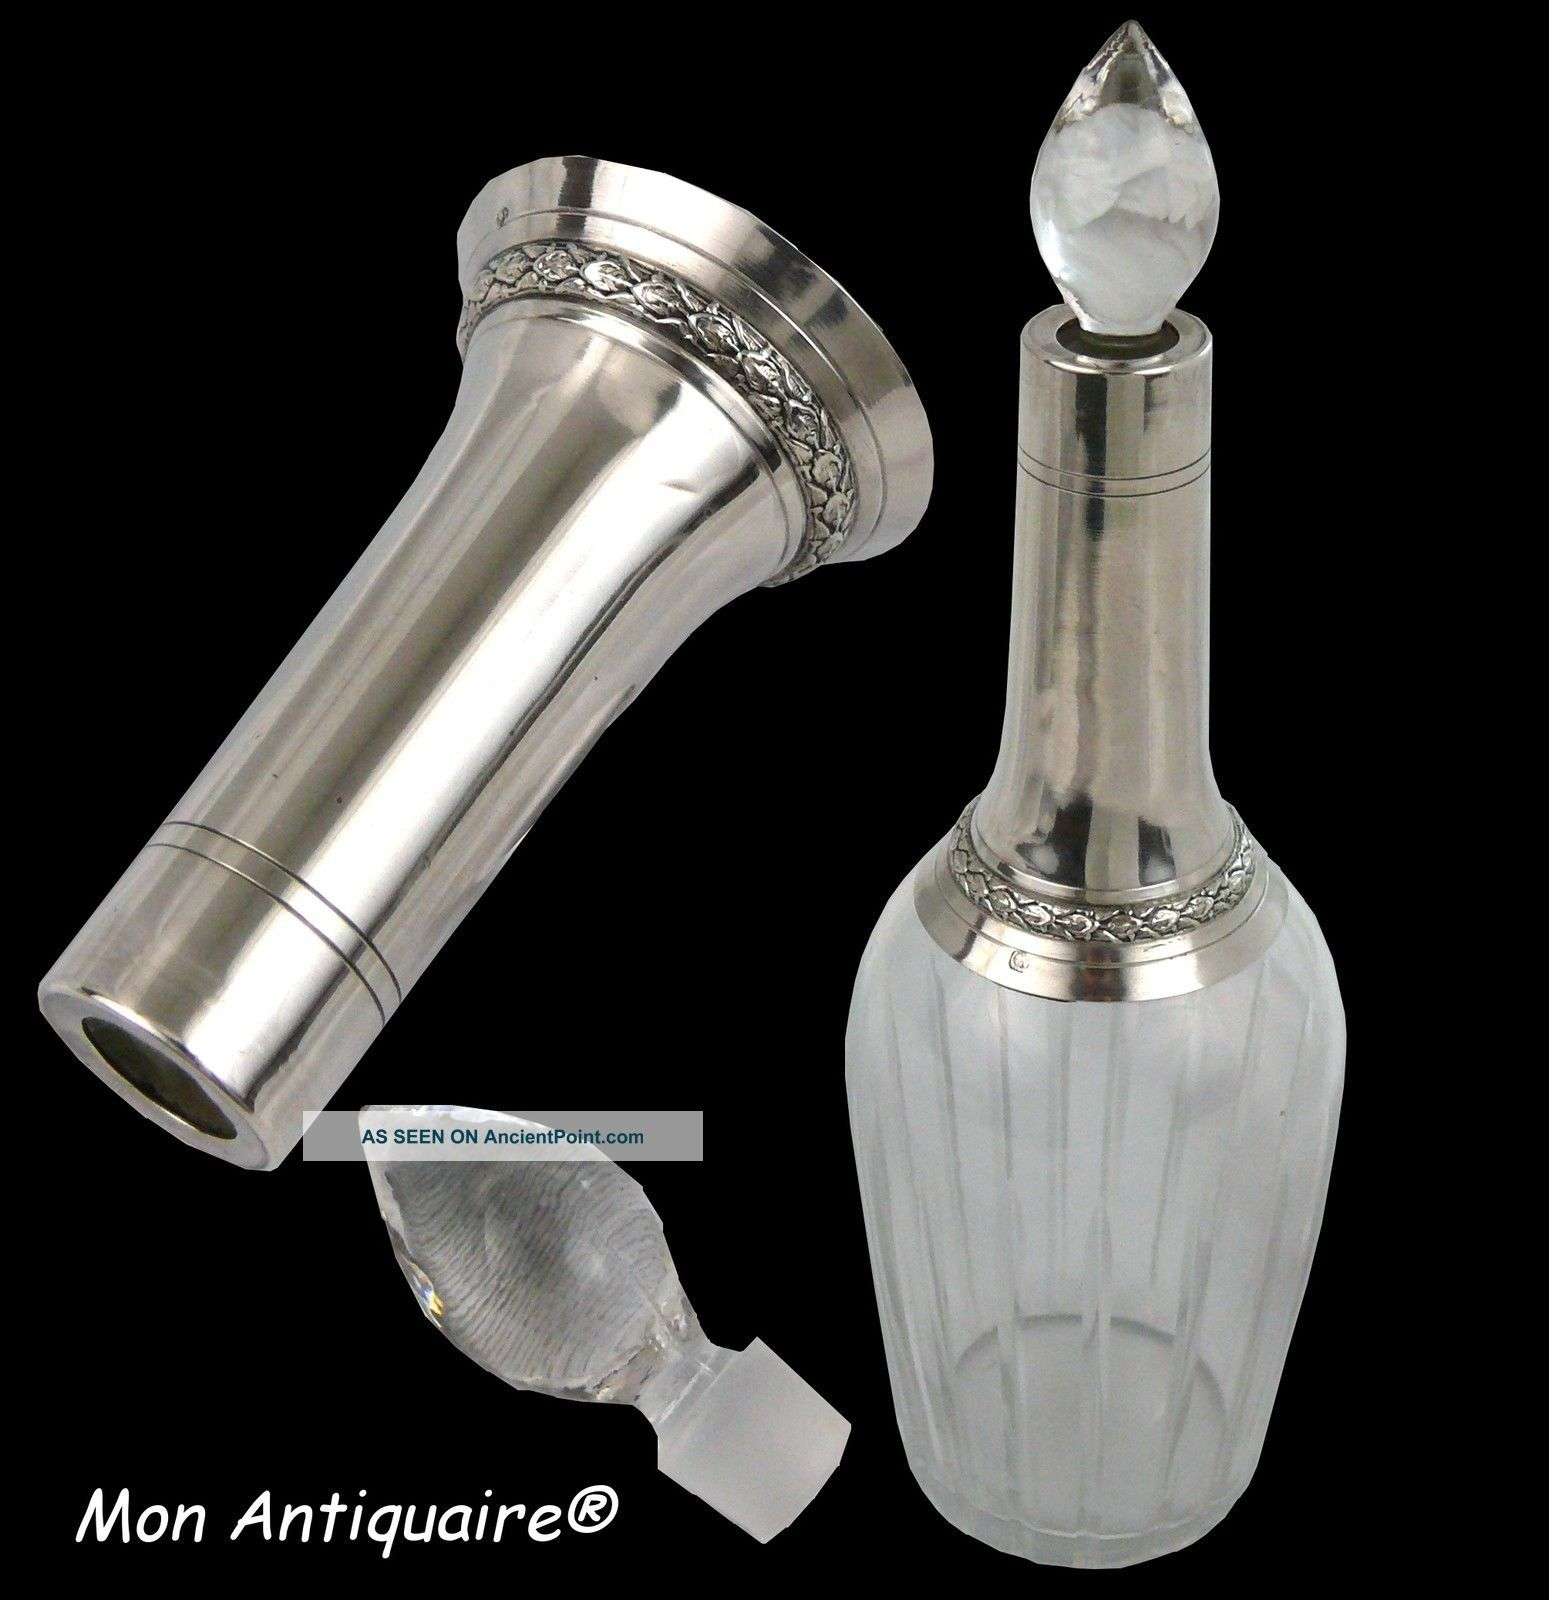 Antique French Sterling Silver & Cut Crystal Liquor Decanter Bottle Empire Style Bottles, Decanters & Flasks photo